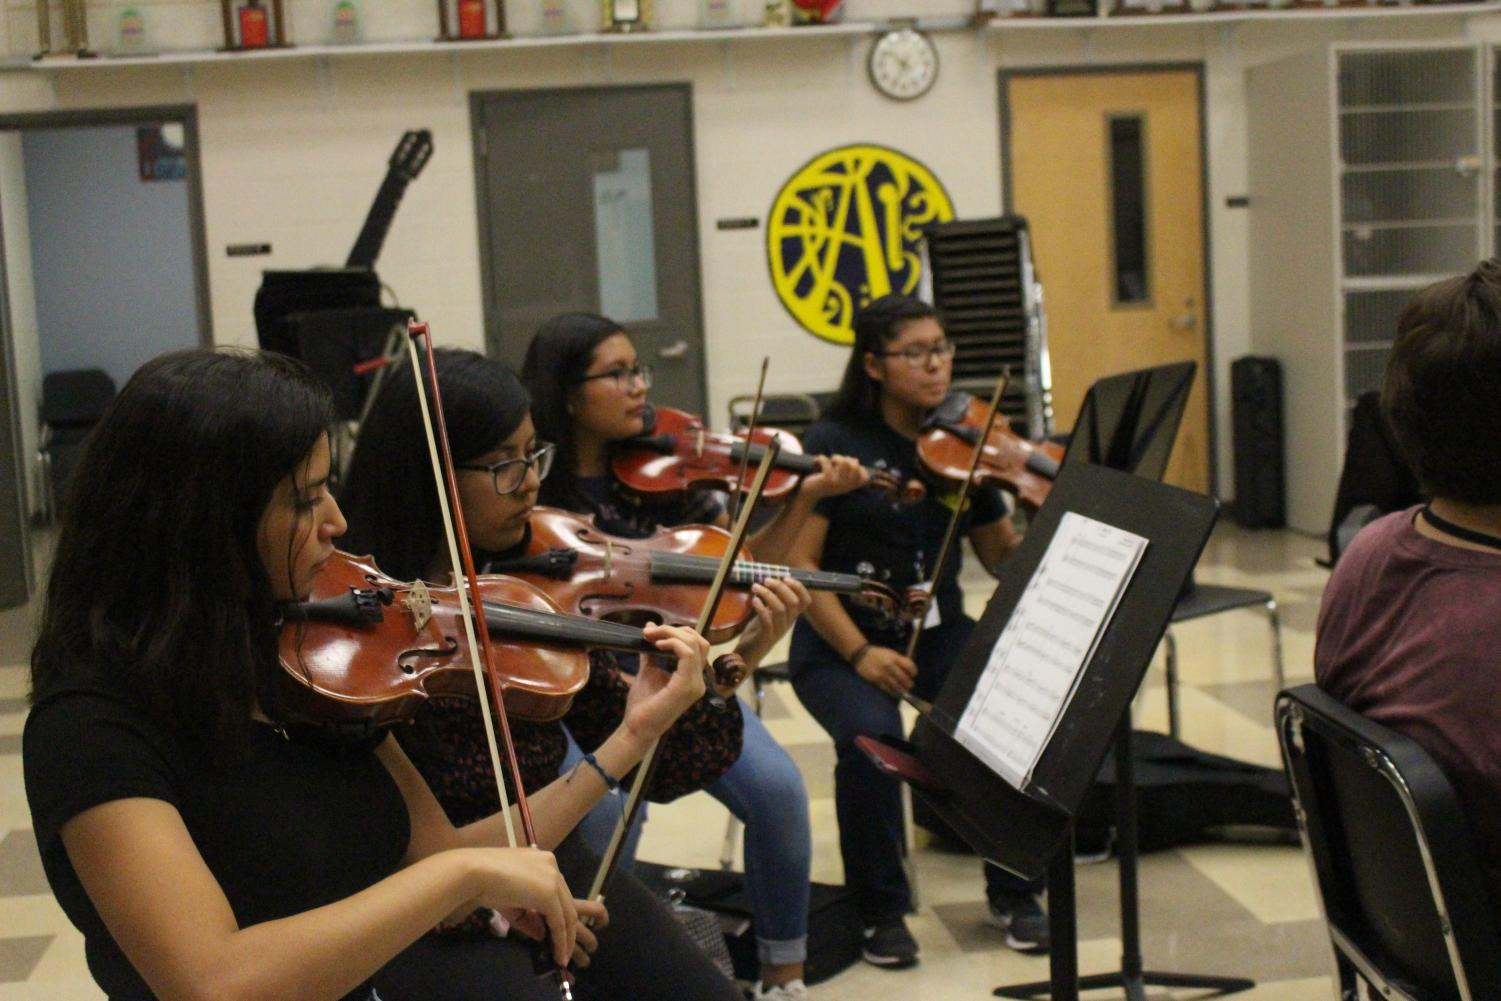 Students play violin as part of the Mariachi Club after school in the orchestra room. The club meets on Wednesdays starting at 4:30 p.m.